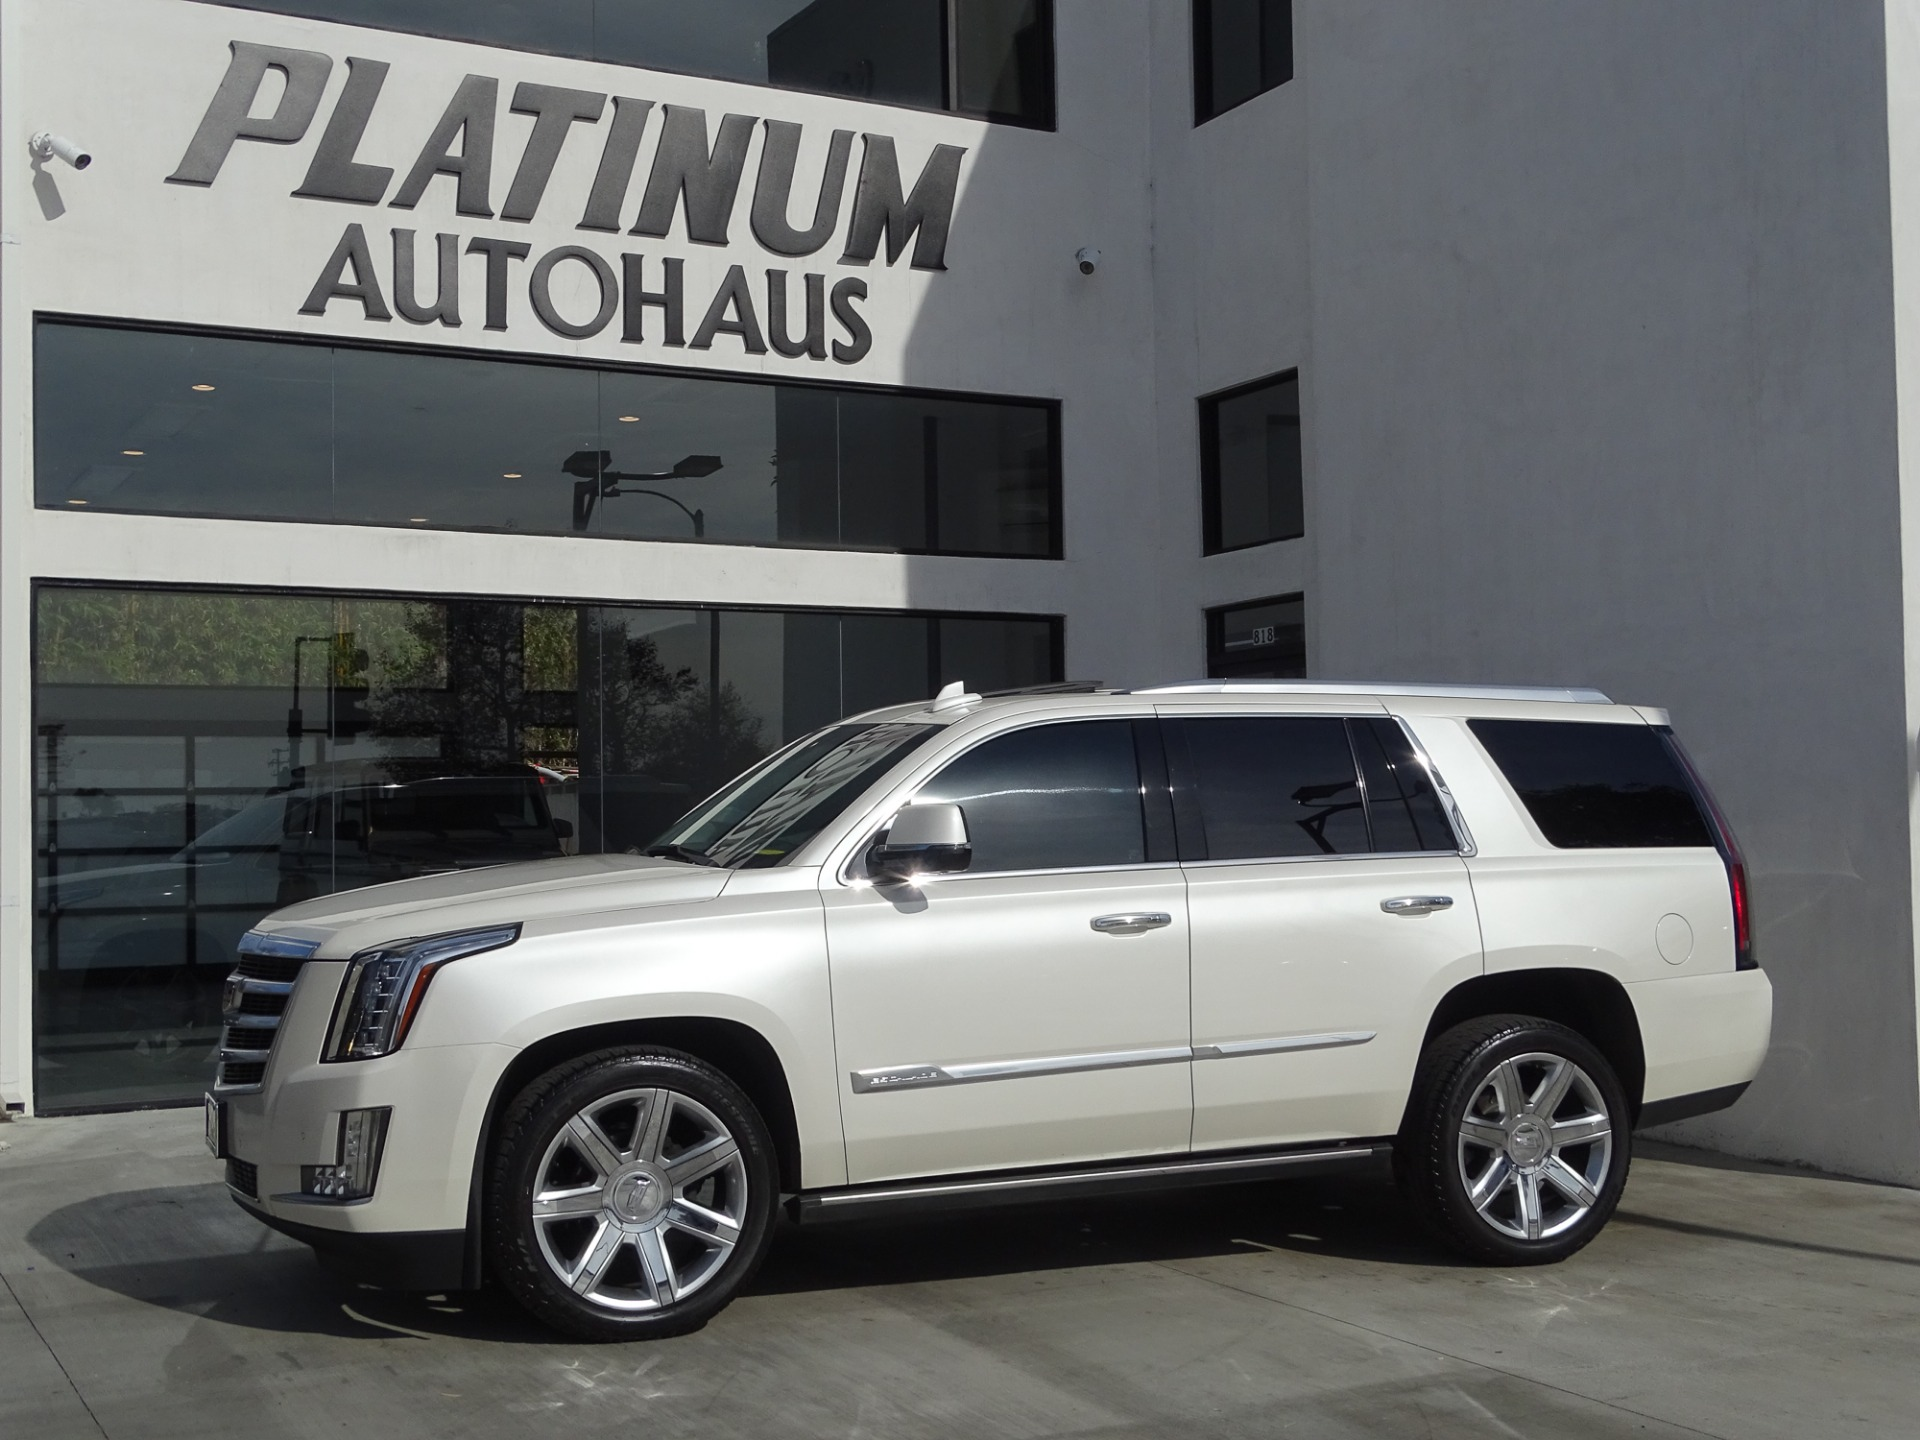 2015 Cadillac Escalade Premium Stock 6115 for sale near Redondo